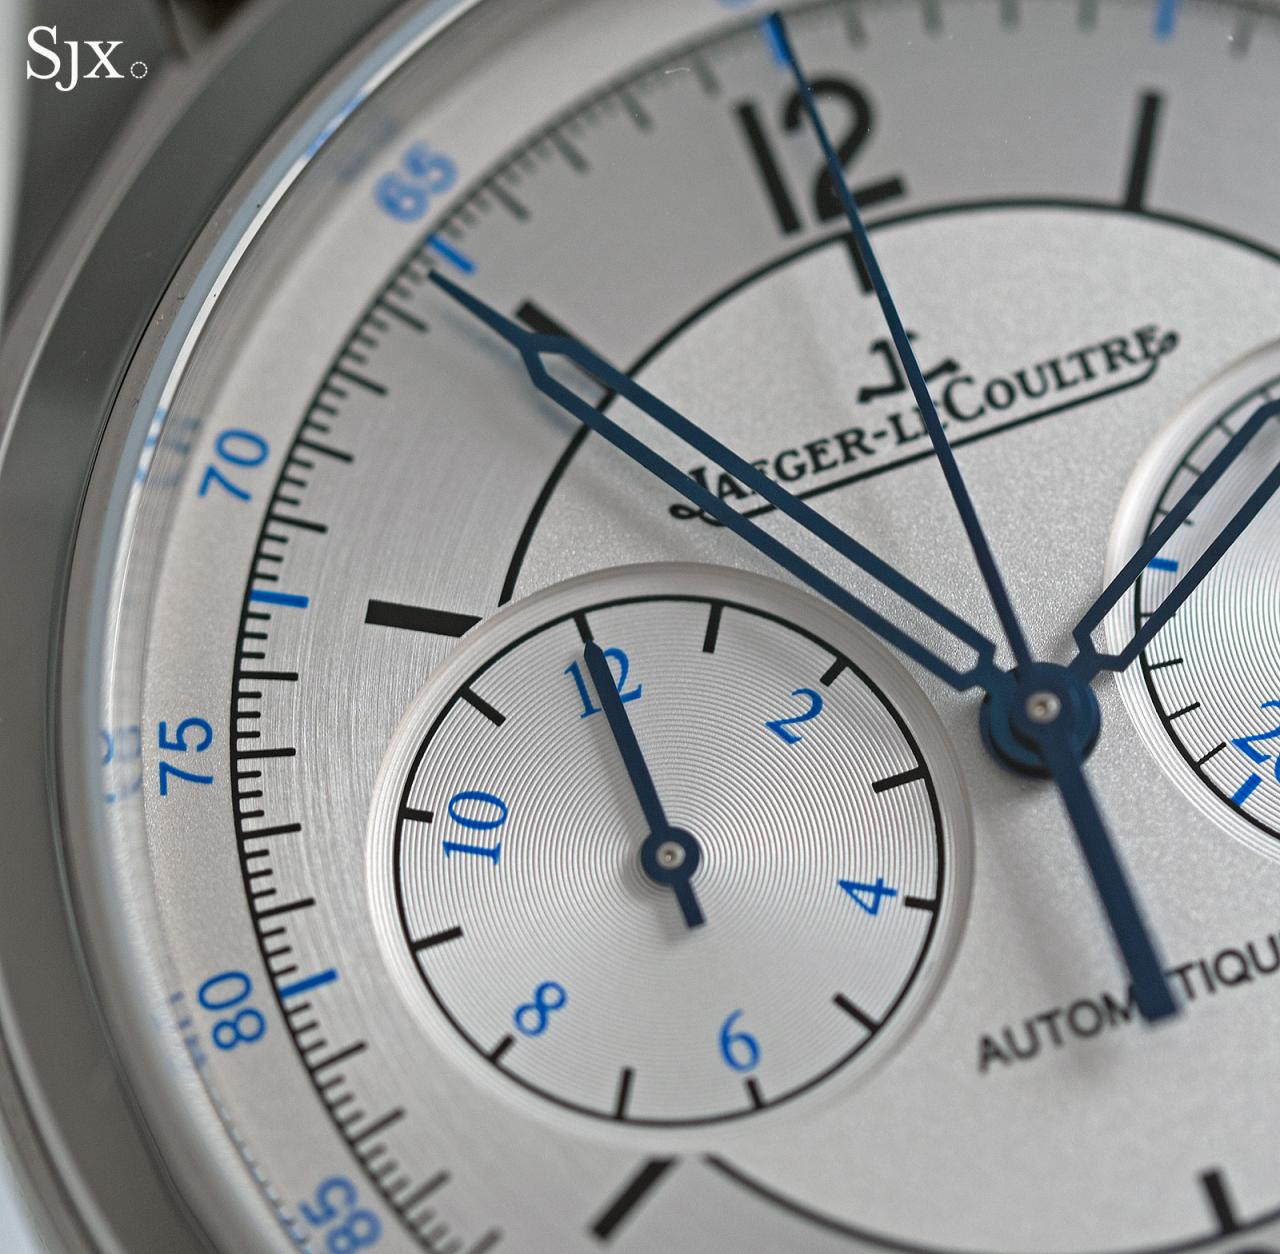 Jaeger-LeCoultre Master Control Chronograph sector dial 5